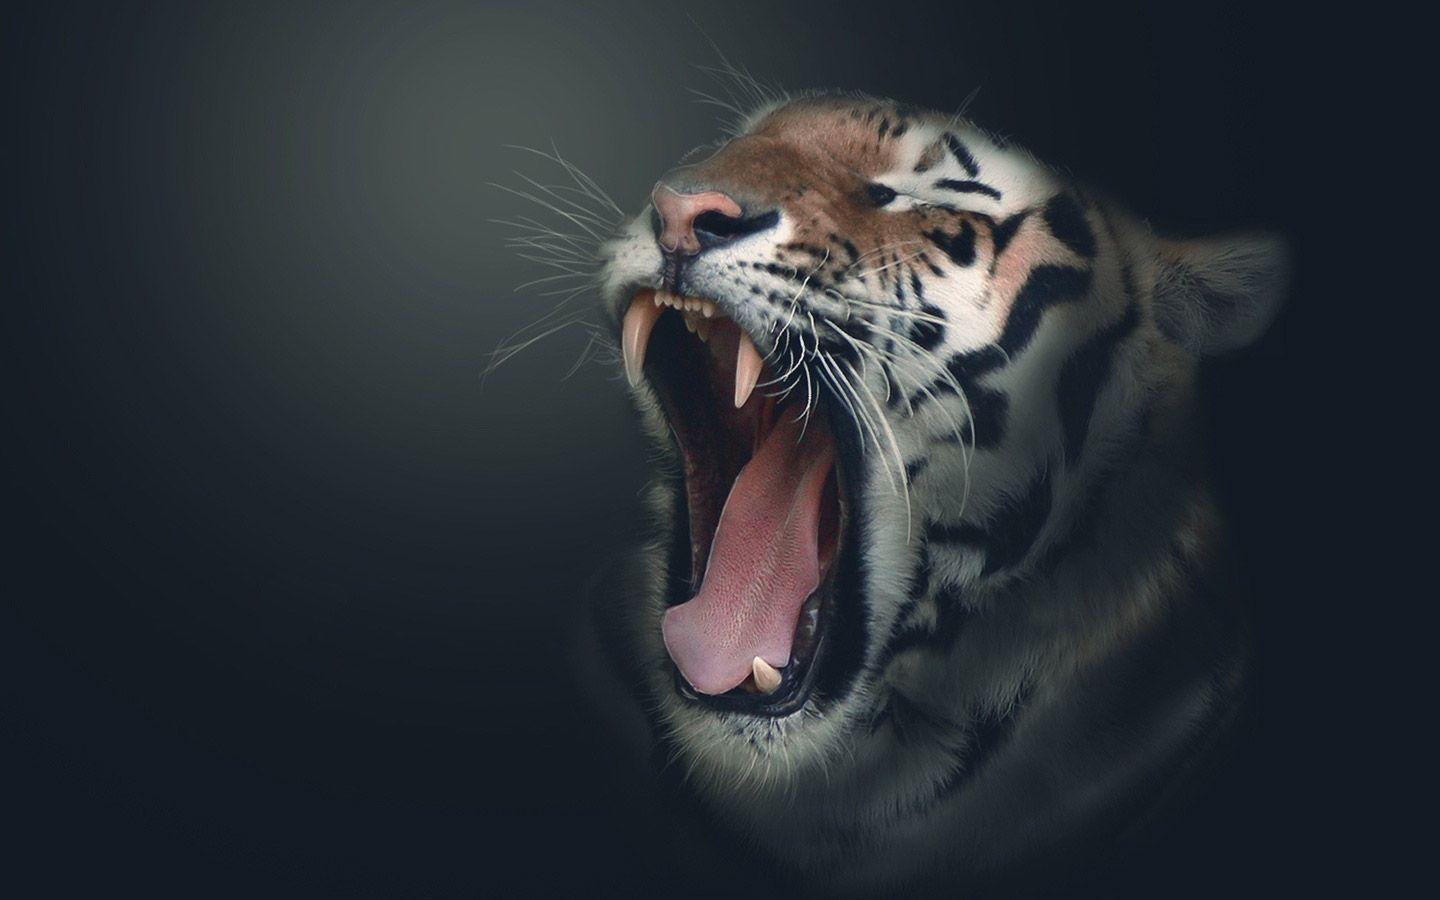 Tigers Hd Wallpapers | Wallpapers Top 10 | Tiger ...